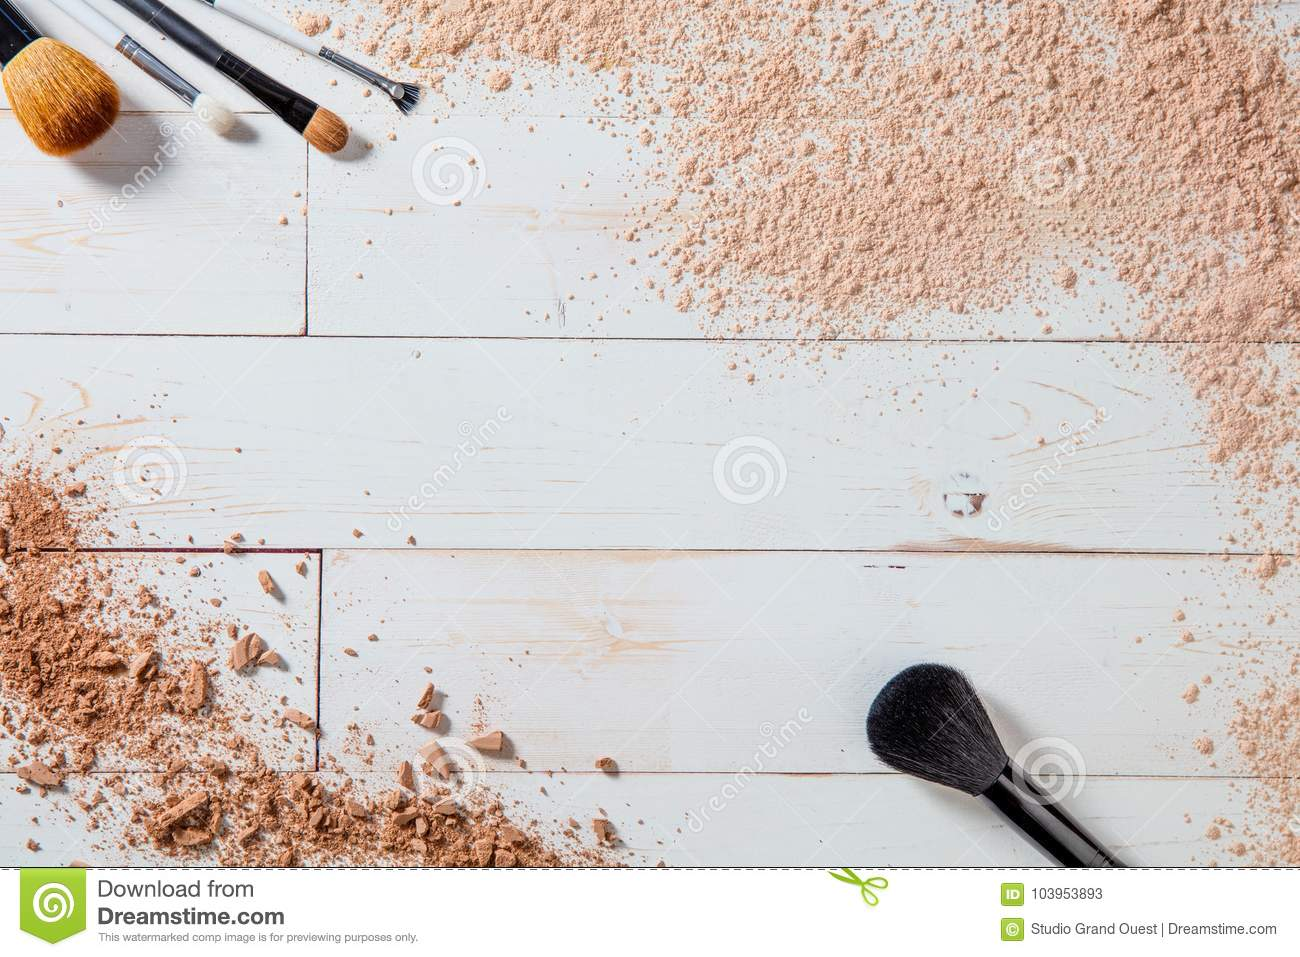 Free powder and crushed minerals makeup with different brushes, wallpaper